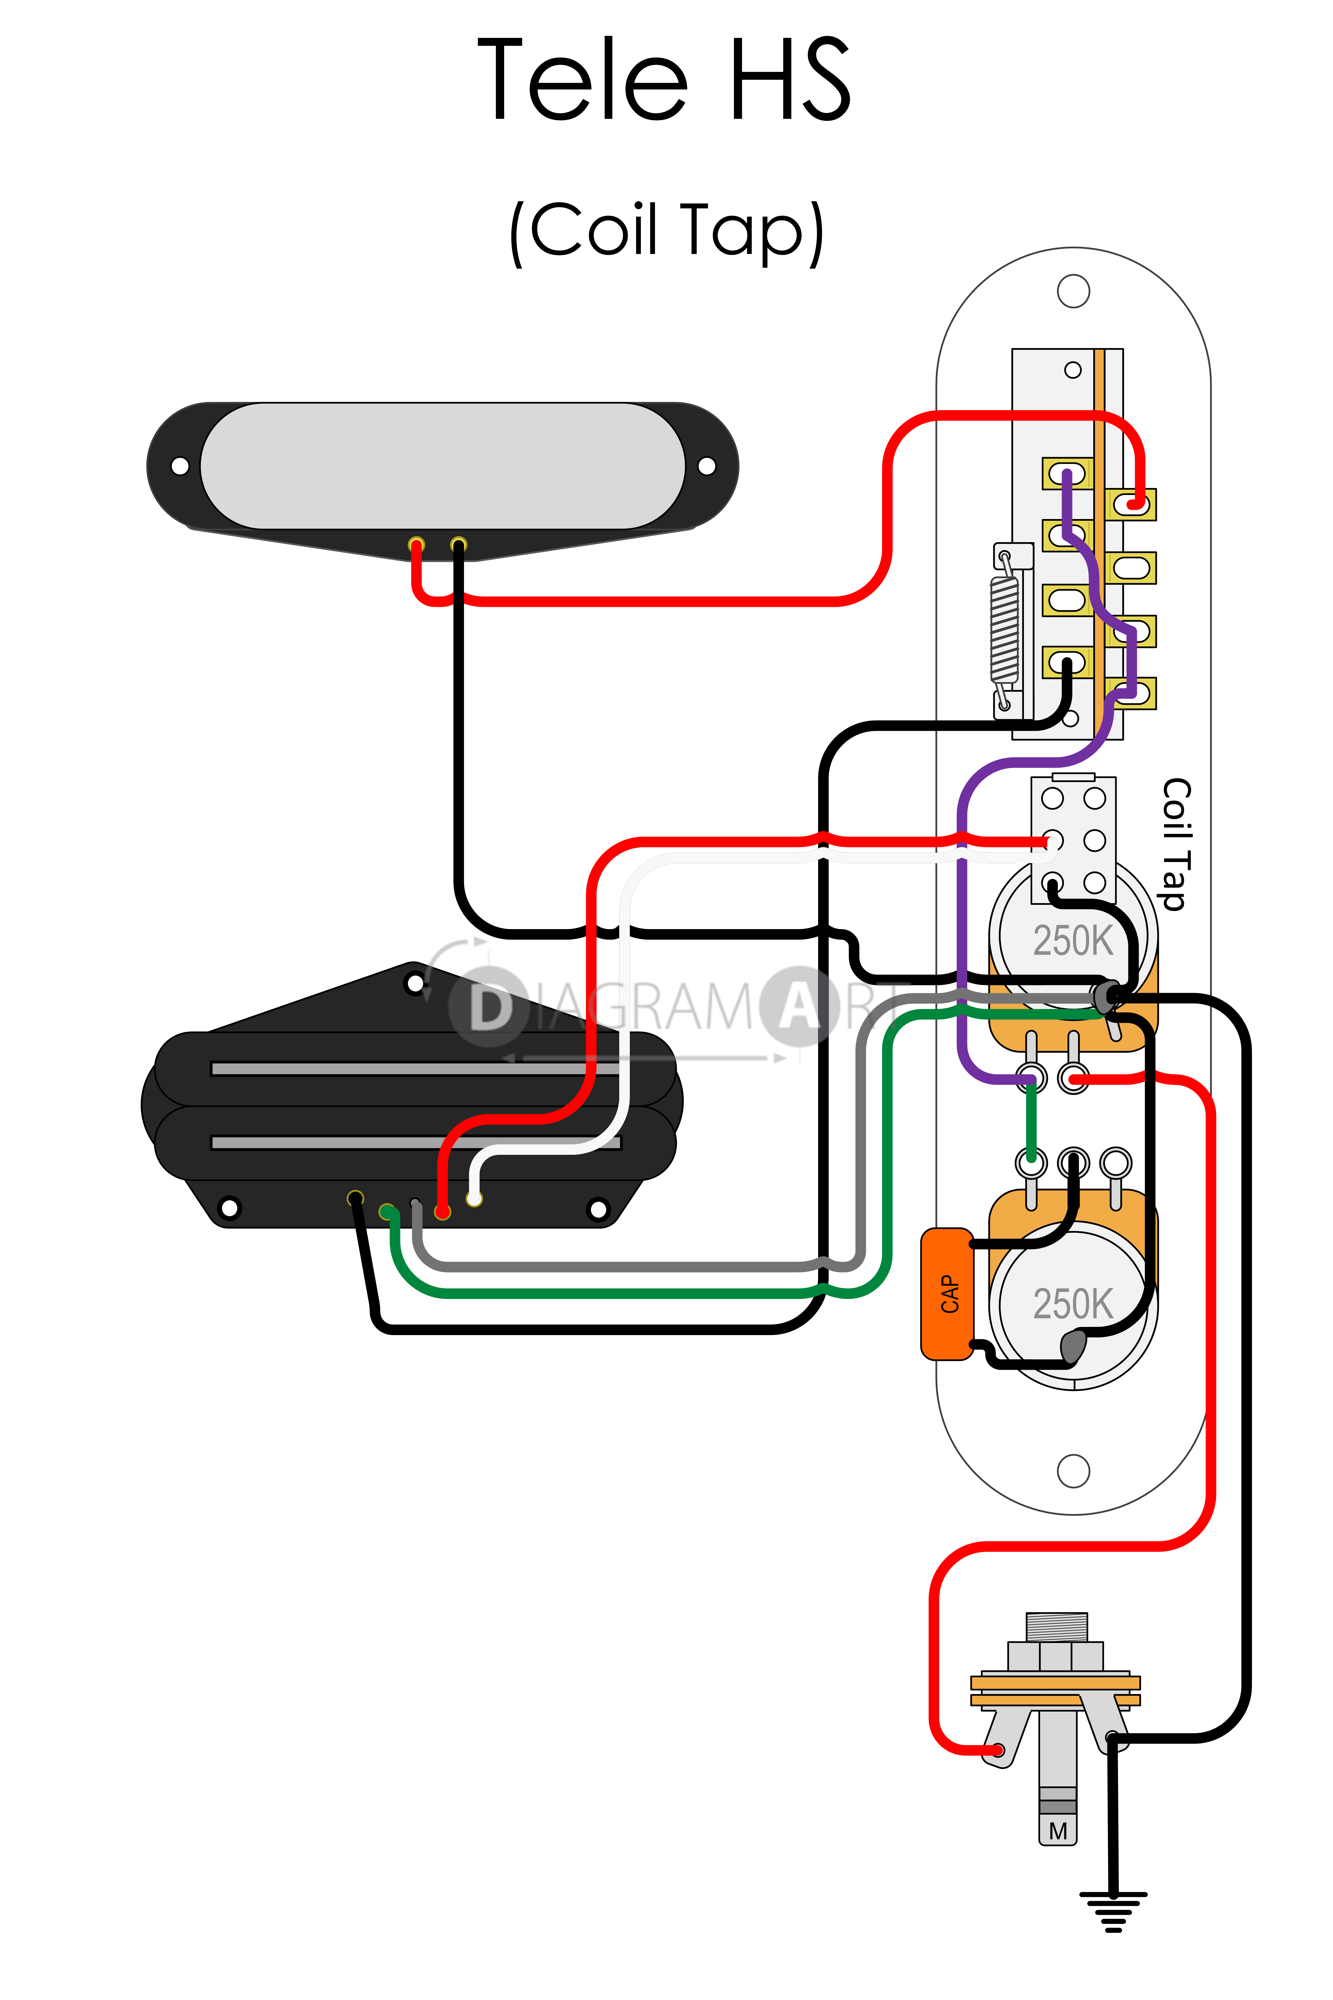 Simple Guitar Wiring Diagram from cdn.shopify.com